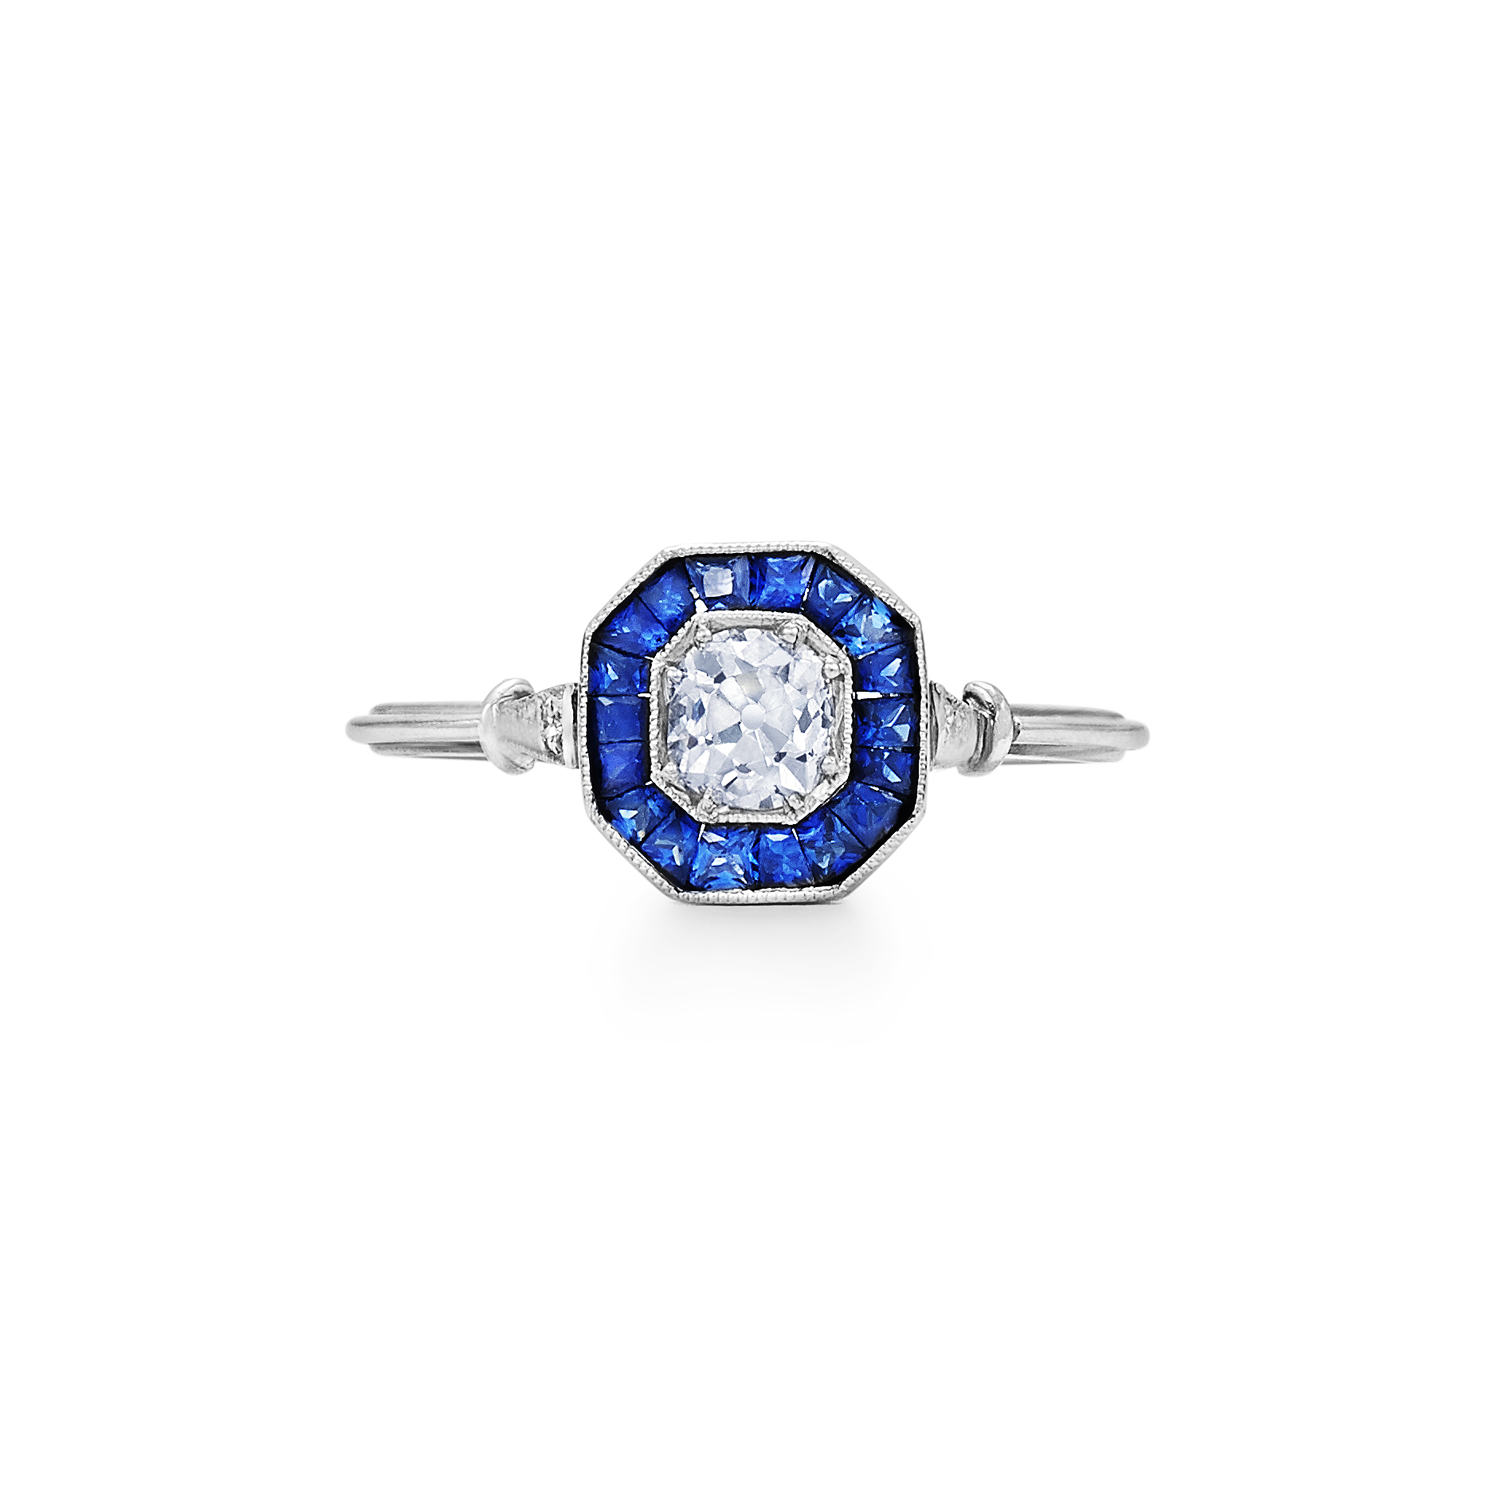 Old European Diamond and Sapphire Octagonal Ring Signed Fred Leighton Style F-1028FL-0-DIASAPP-PLAT